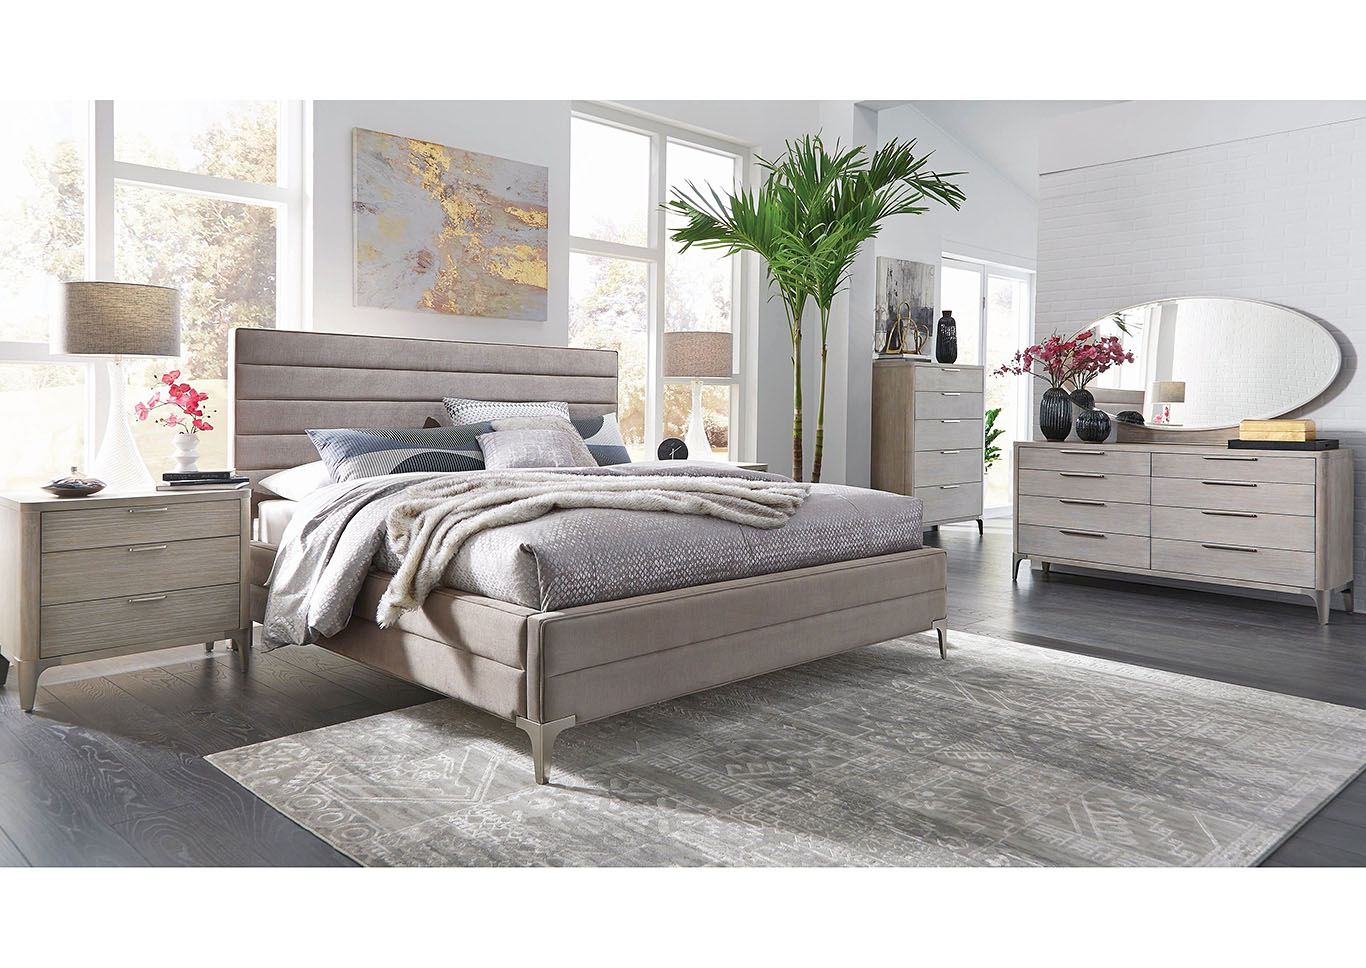 Sasha 4PC Qn Bedroom Pkg,Palliser